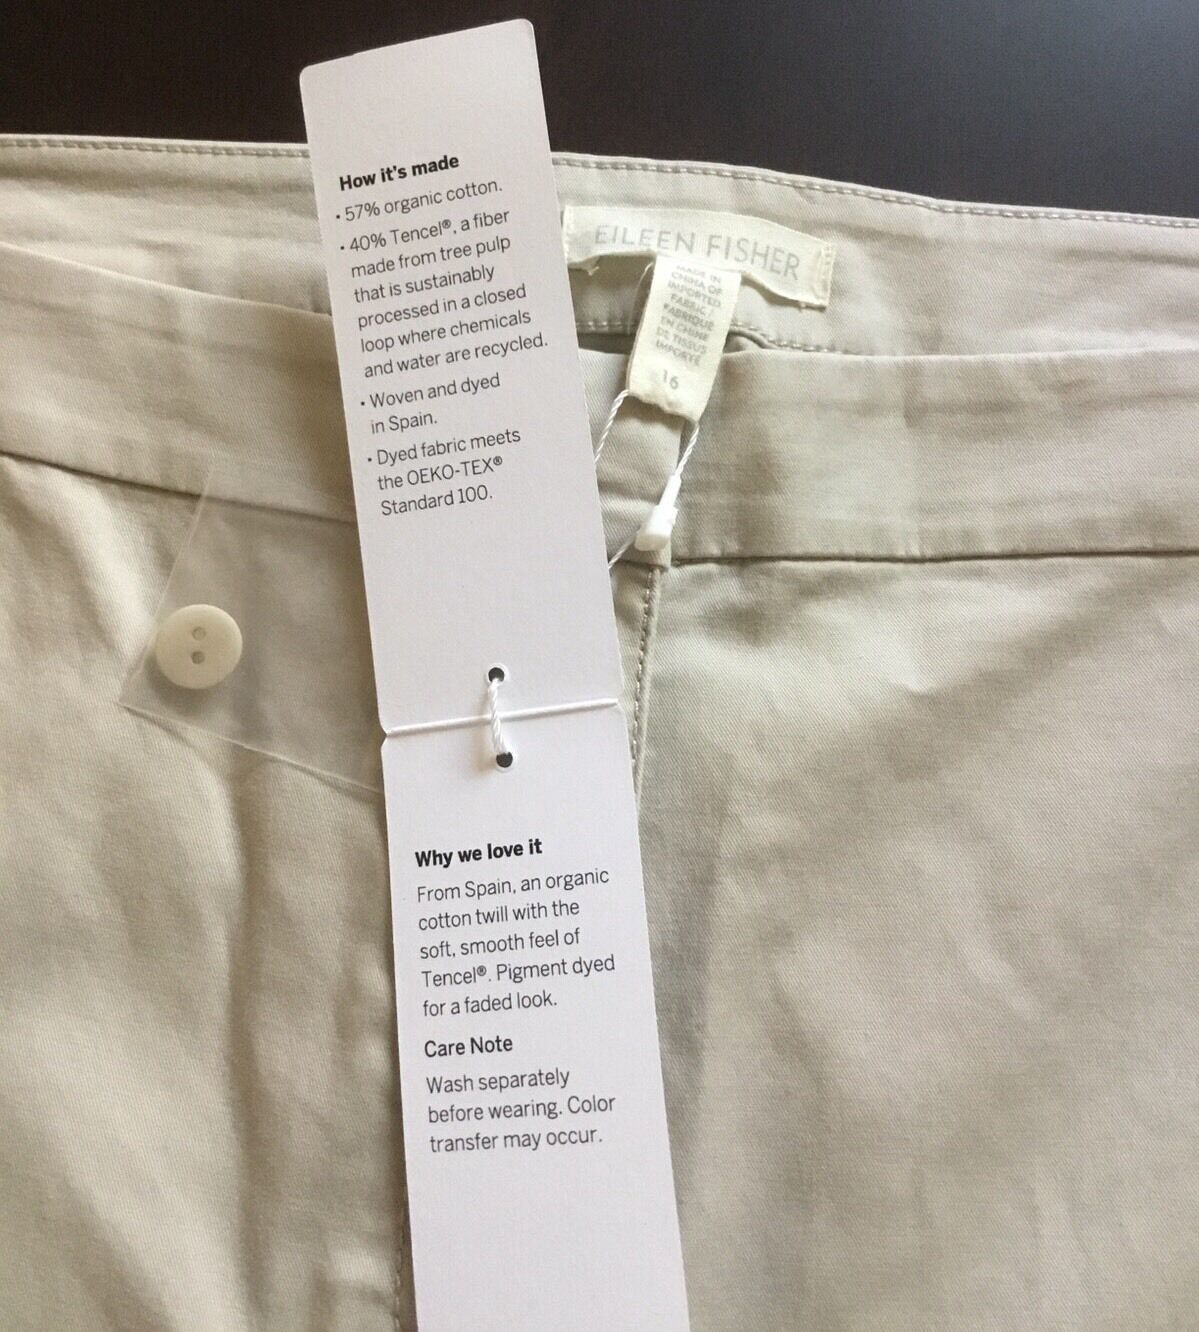 NWT EILEEN FISHER Peble Washed Org. Cotton Tencel Twill Slim Ankle Pant 16